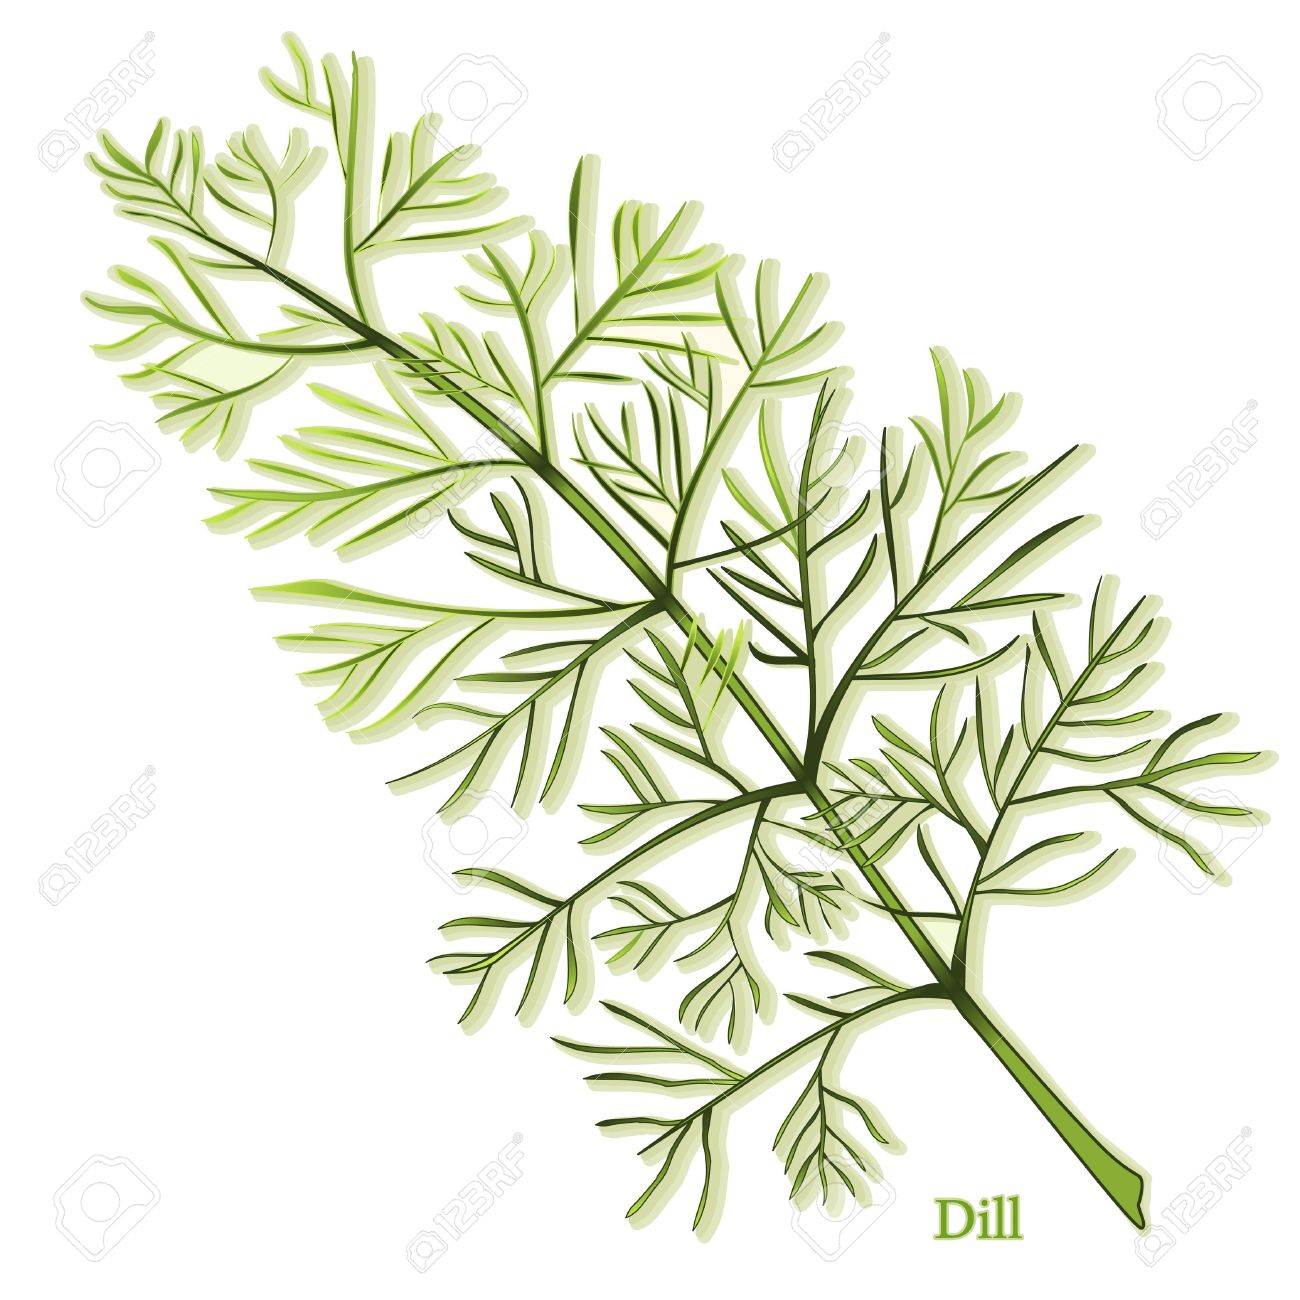 Dill Herb, thin, aromatic leaves used to season foods and  pickles. Also called Dill weed. Stock Vector - 12136892